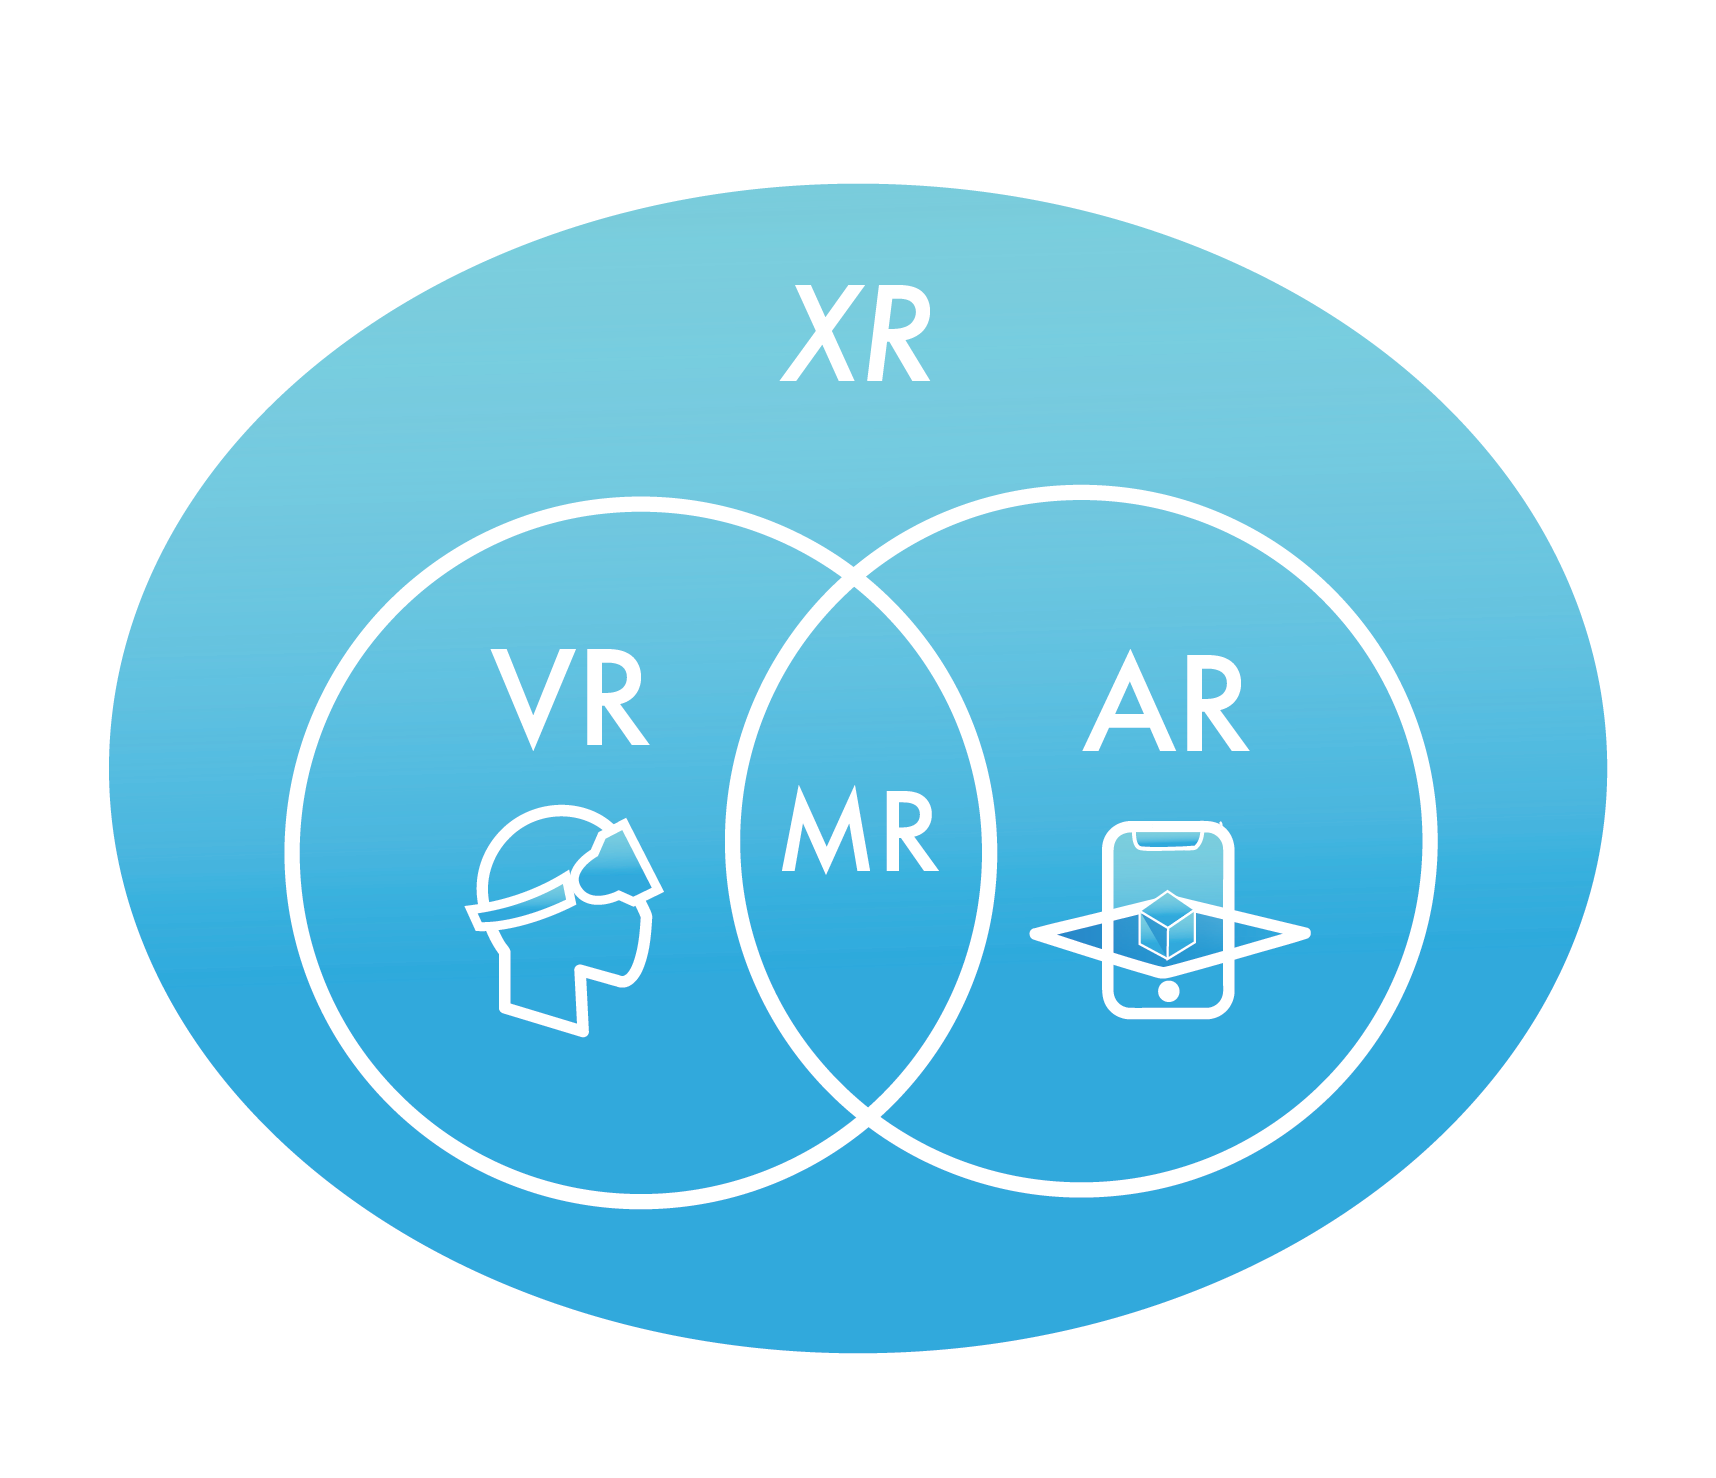 infographic venndiagram of XR technologies. On the left in one circle is VR with an icon of someone in a virtual reality headset. On the right circle is a AR with an icon of phone displaying augmented reality. The circles overlap and display MR for mixed reality in the middle.